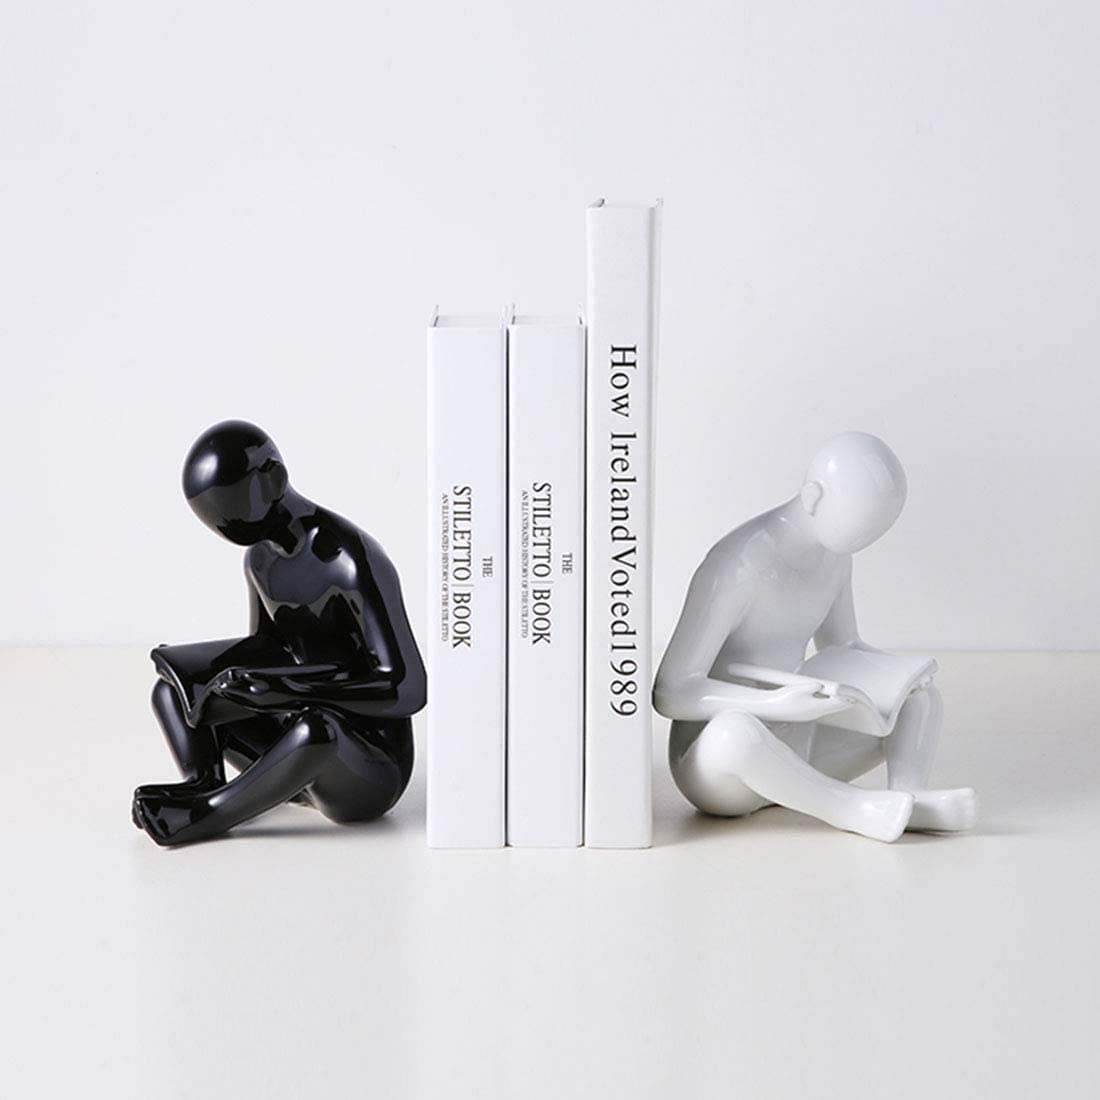 Ceramic Reading Bookend 1 Pair,Decorative Figurine Accent Piece for Home,Office,Table and Desk Decor (White and Black)